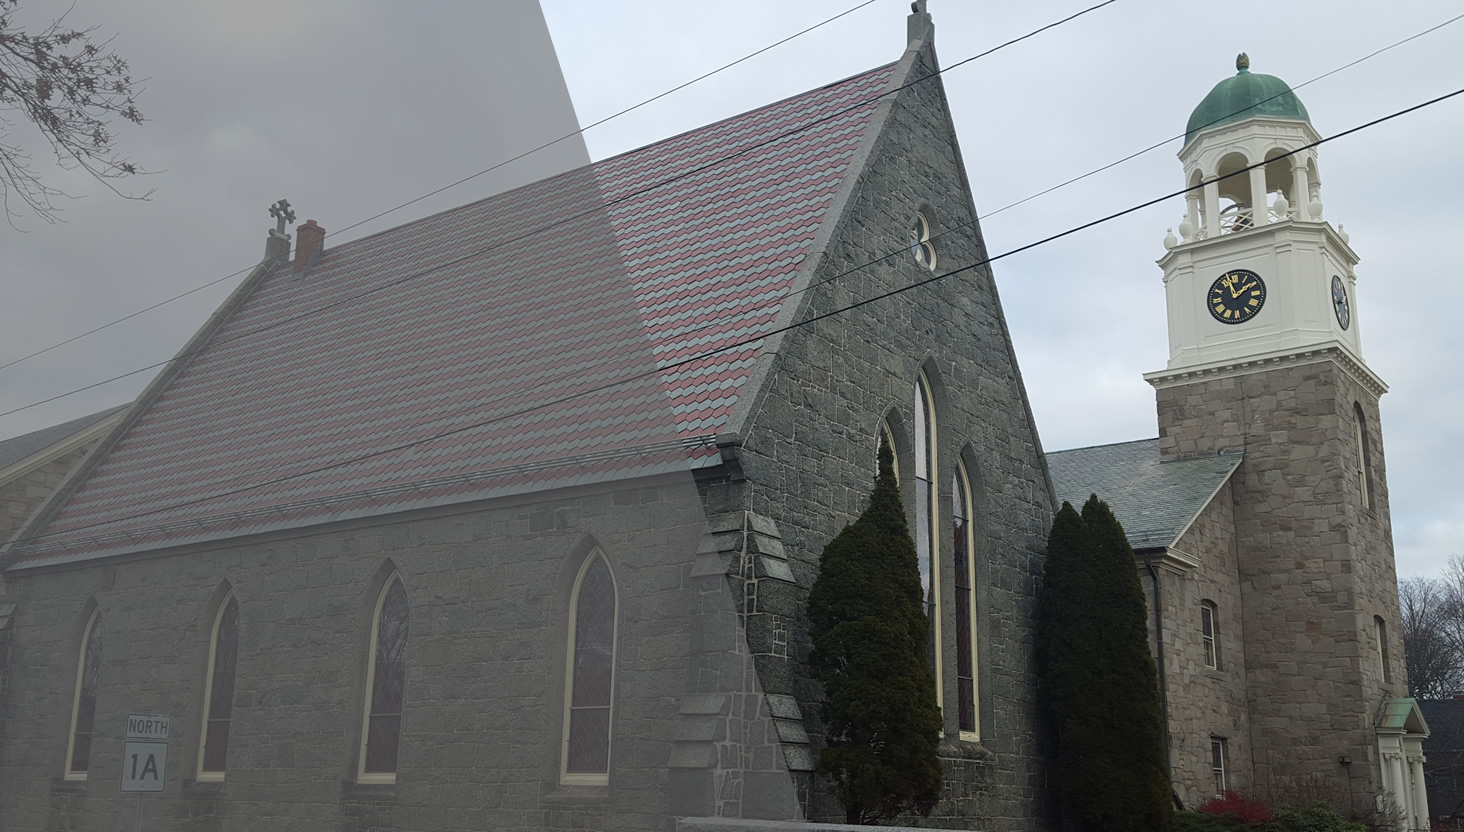 Church Slate Roofing - by J.B Kidney Roofing, Salem, MA